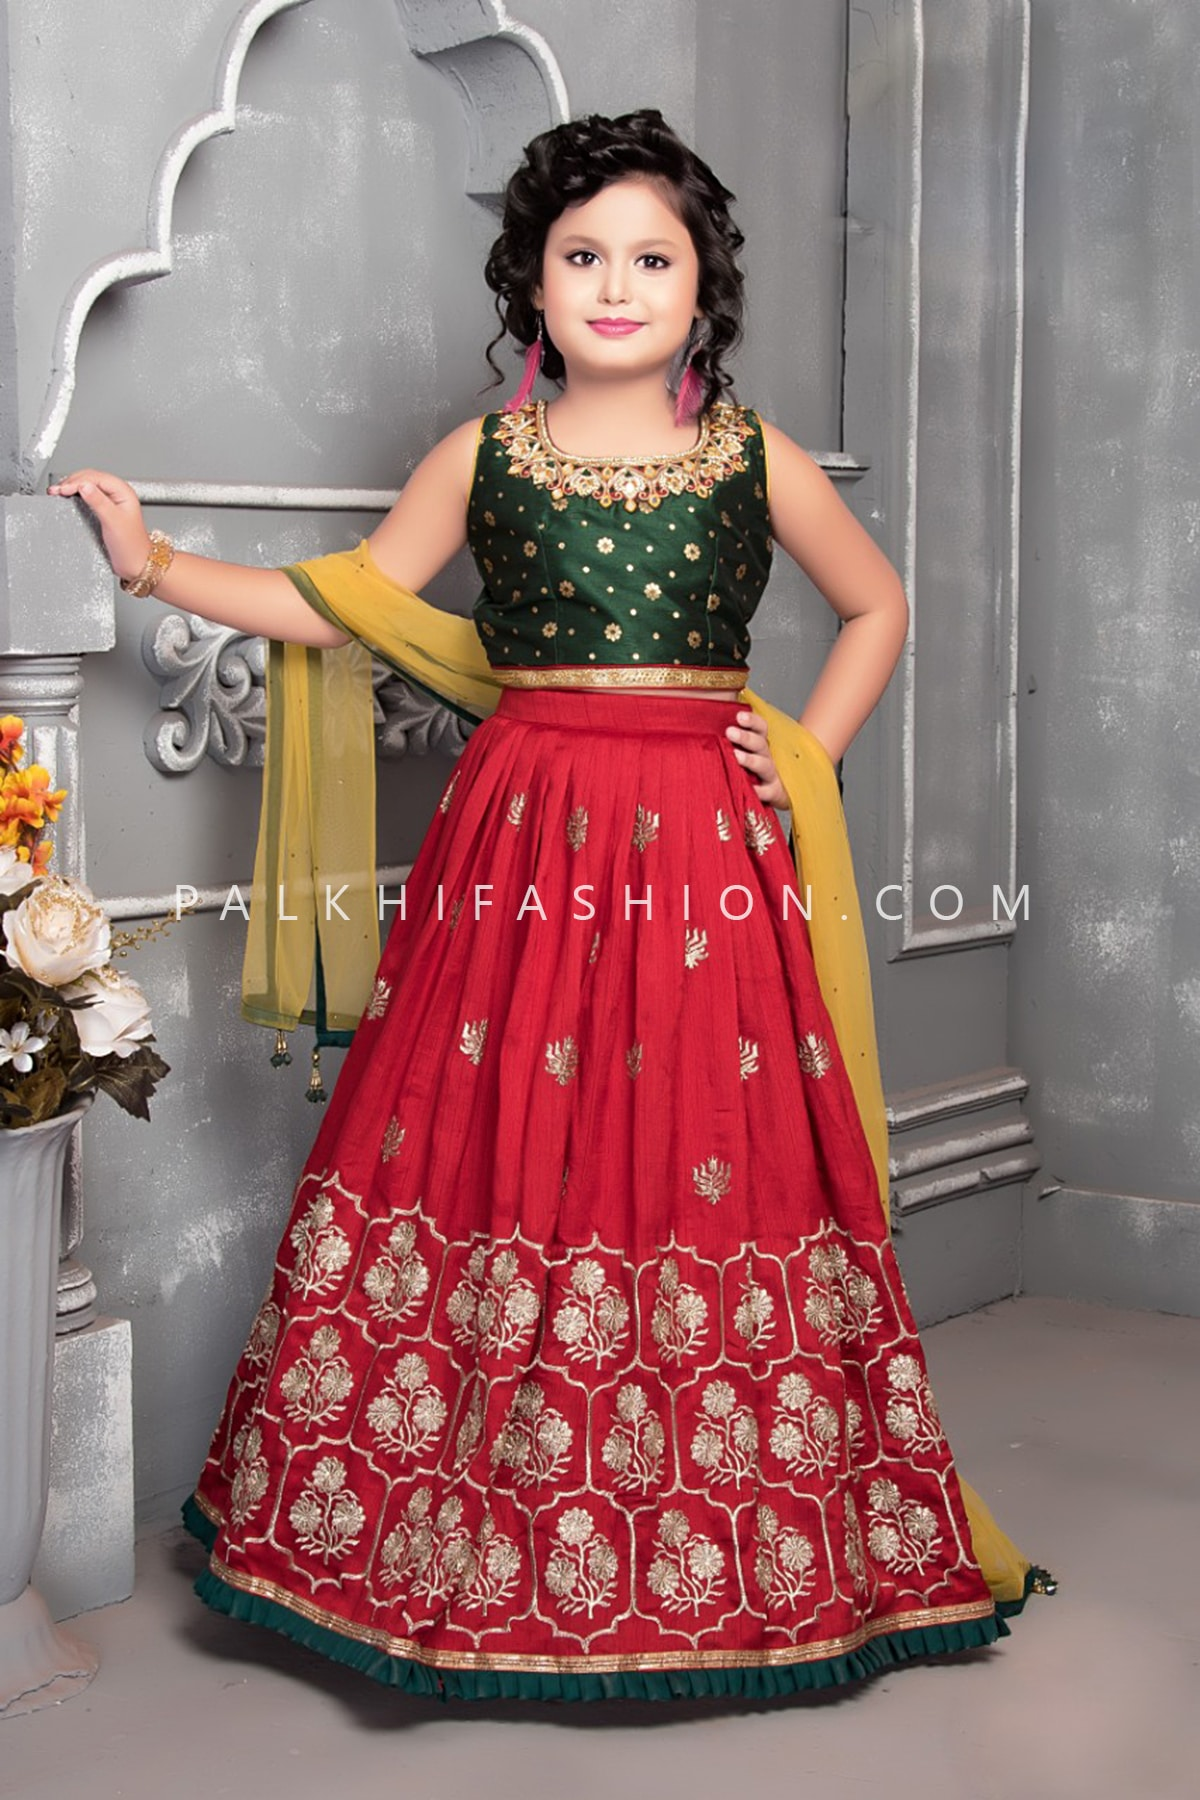 MaroonGreen Girls Lehenga Set With Appealing Work-Palkhi Fashion